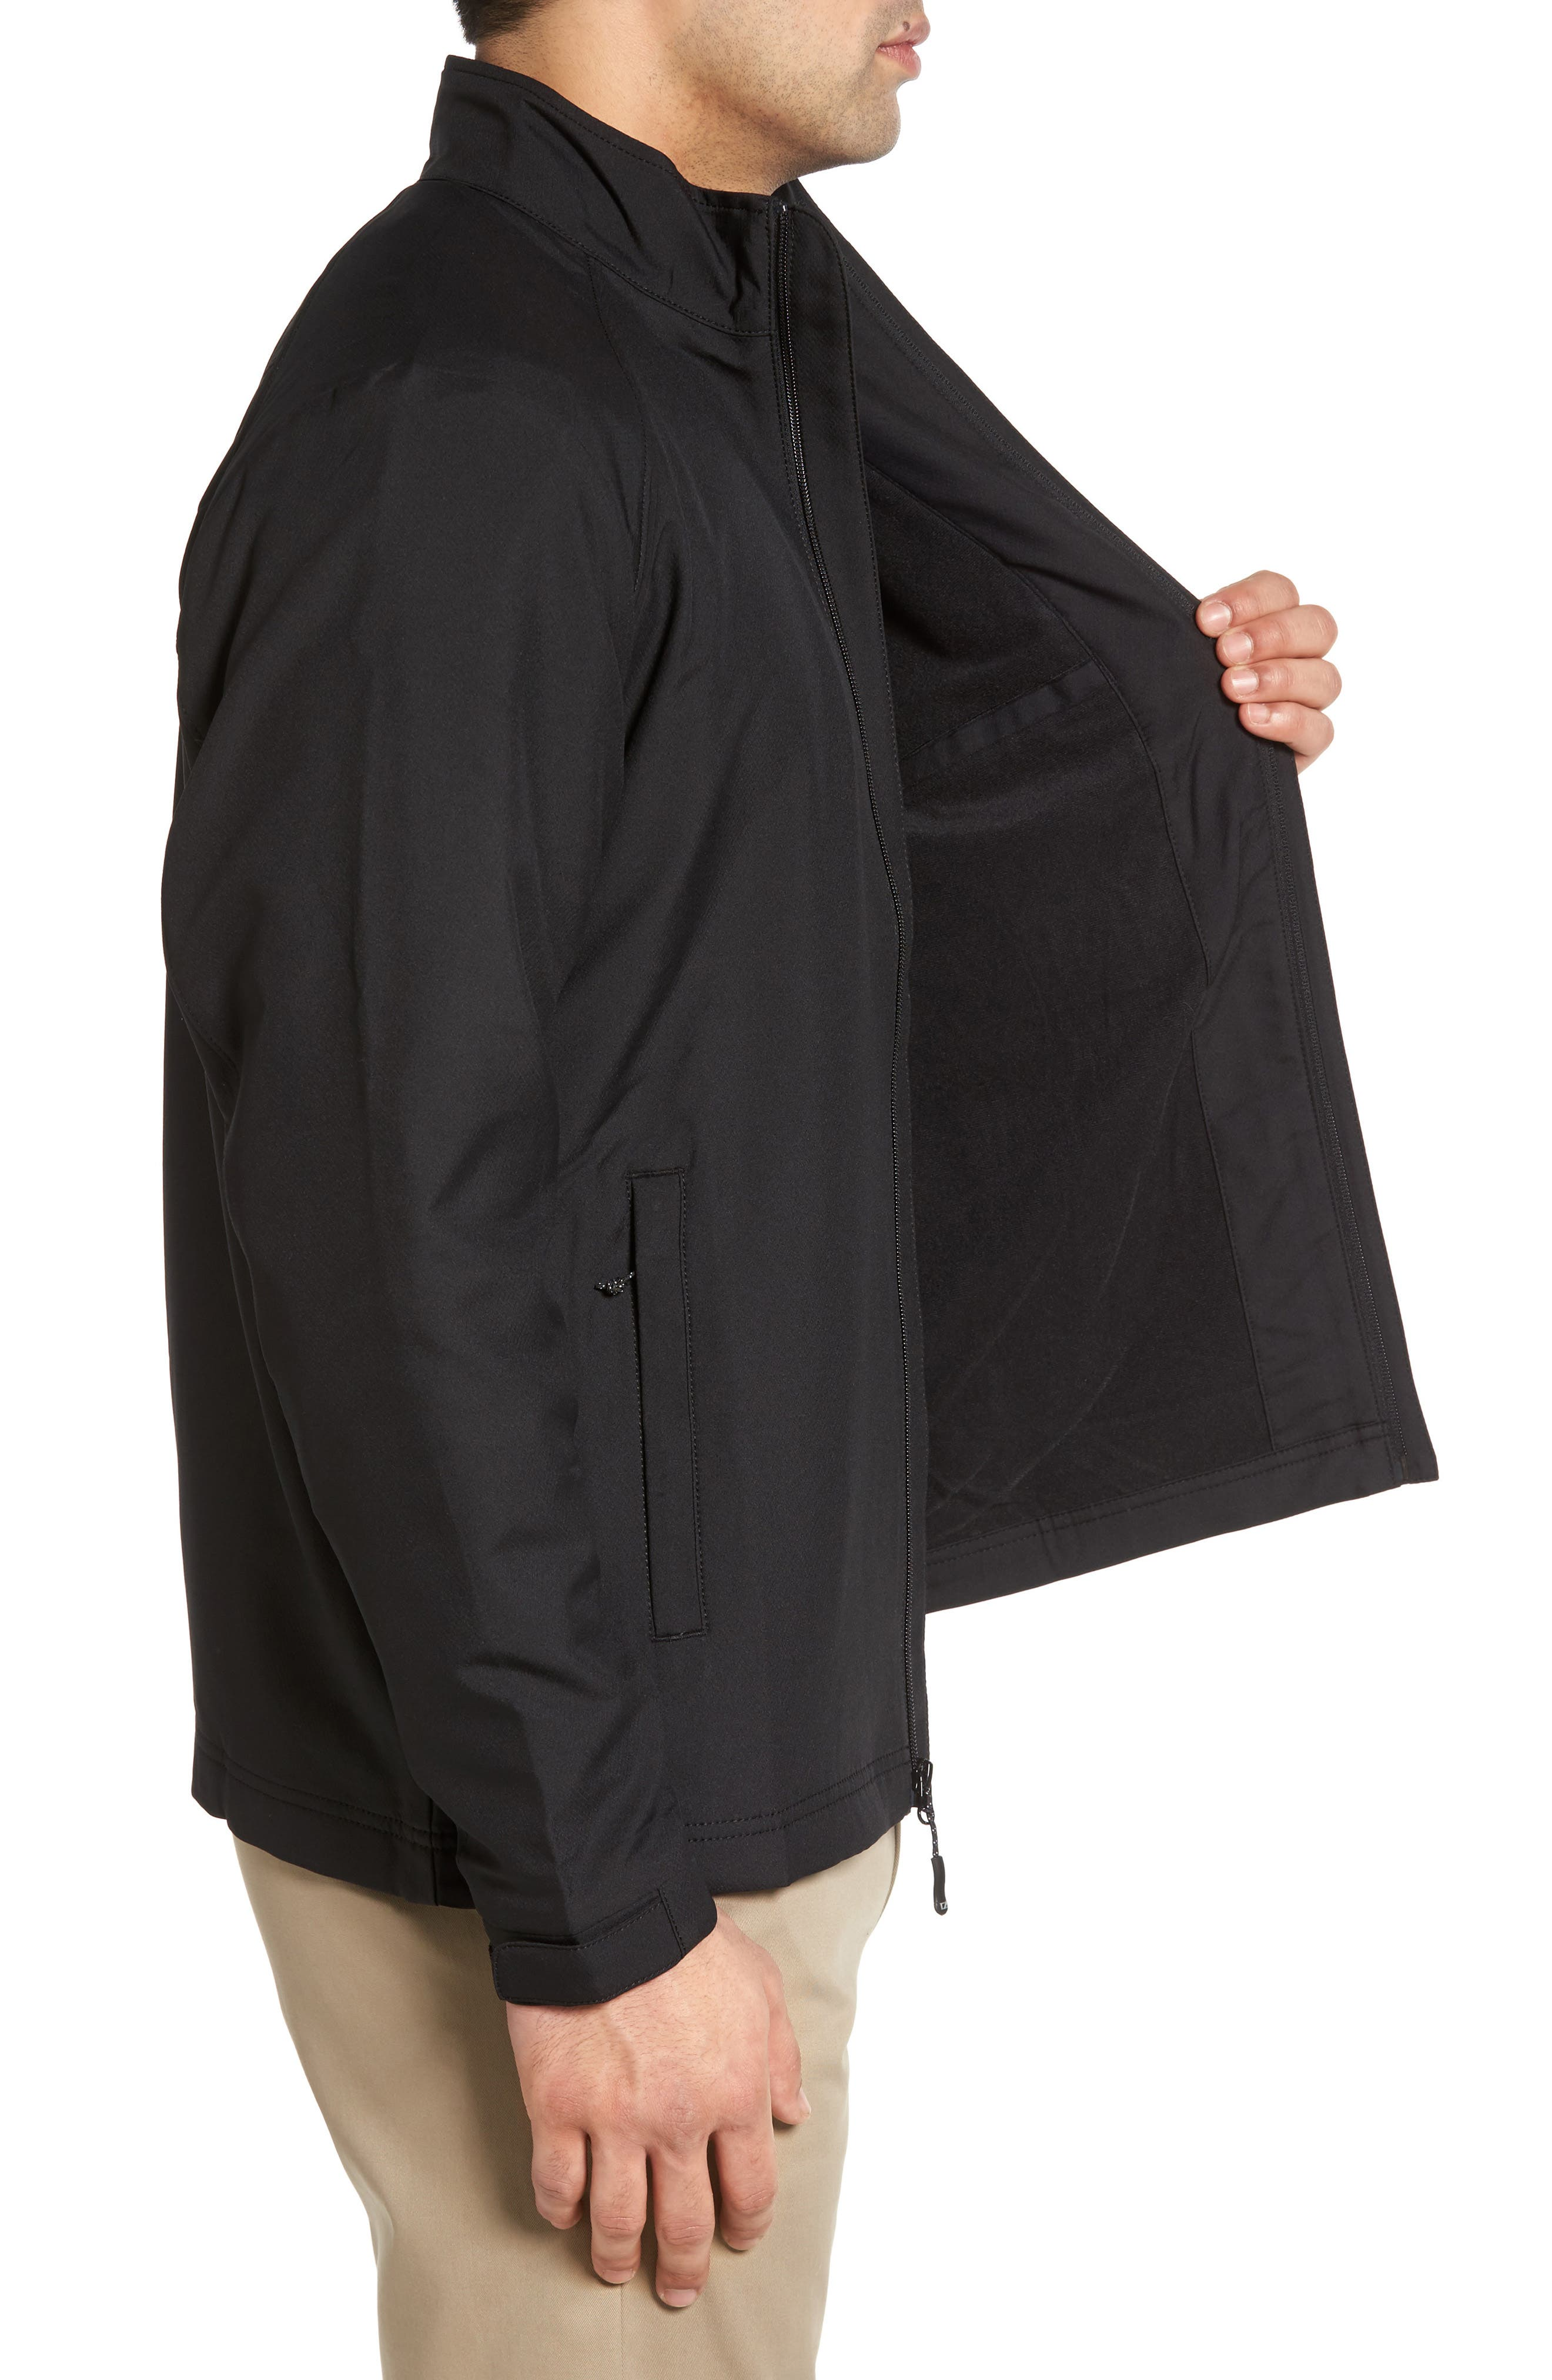 'Blakely' WeatherTec<sup>®</sup> Wind & Water Resistant Full Zip Jacket,                             Alternate thumbnail 4, color,                             BLACK